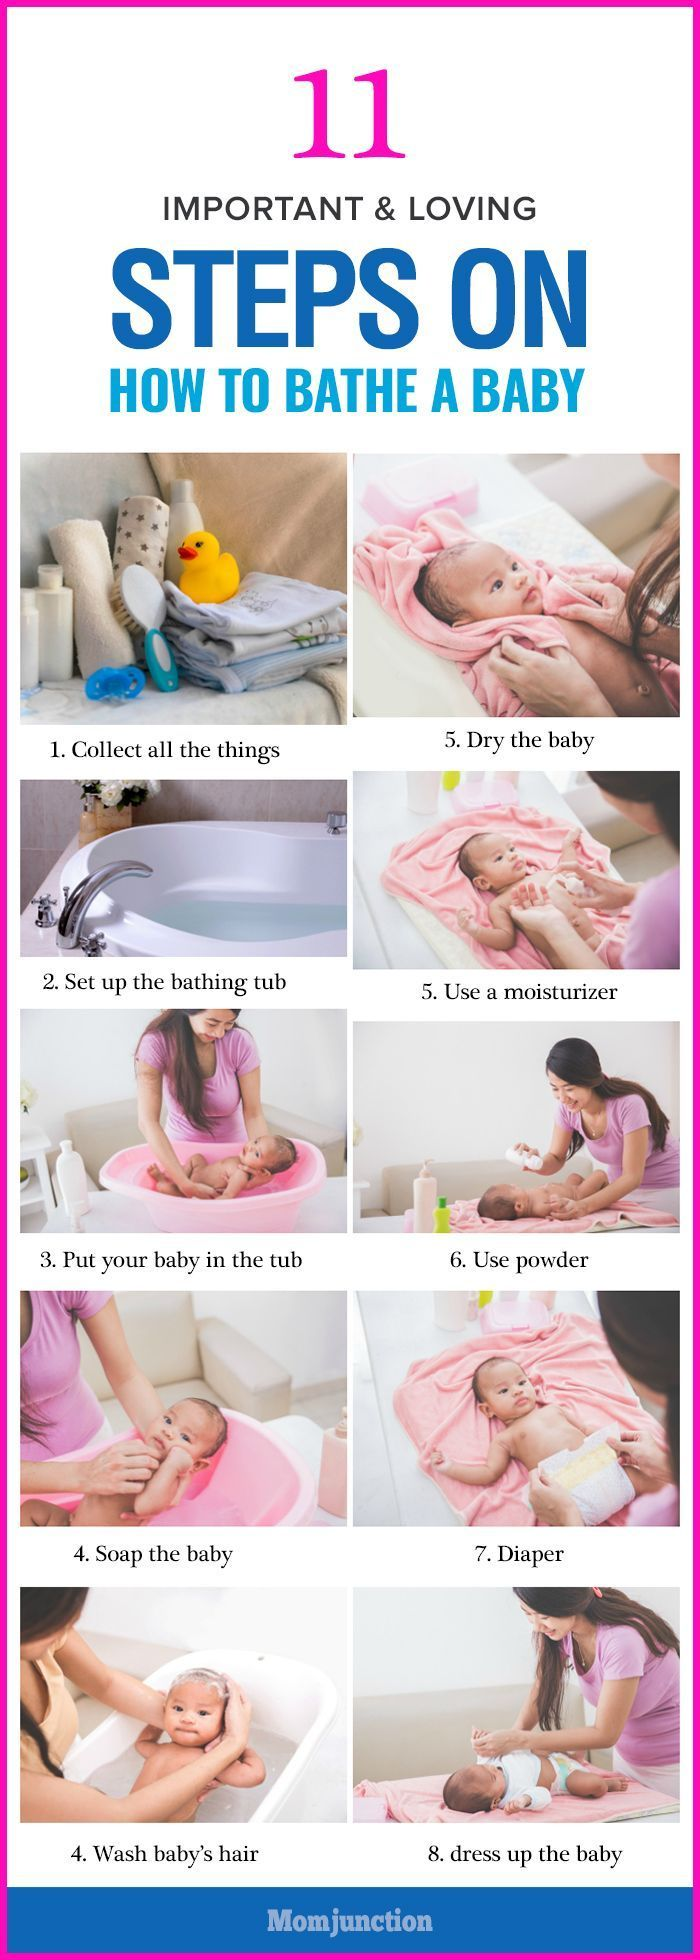 Baby bath can be exciting and stressful at the same time. But, relax here's a step-by-step guide on how to bathe a baby and how often.